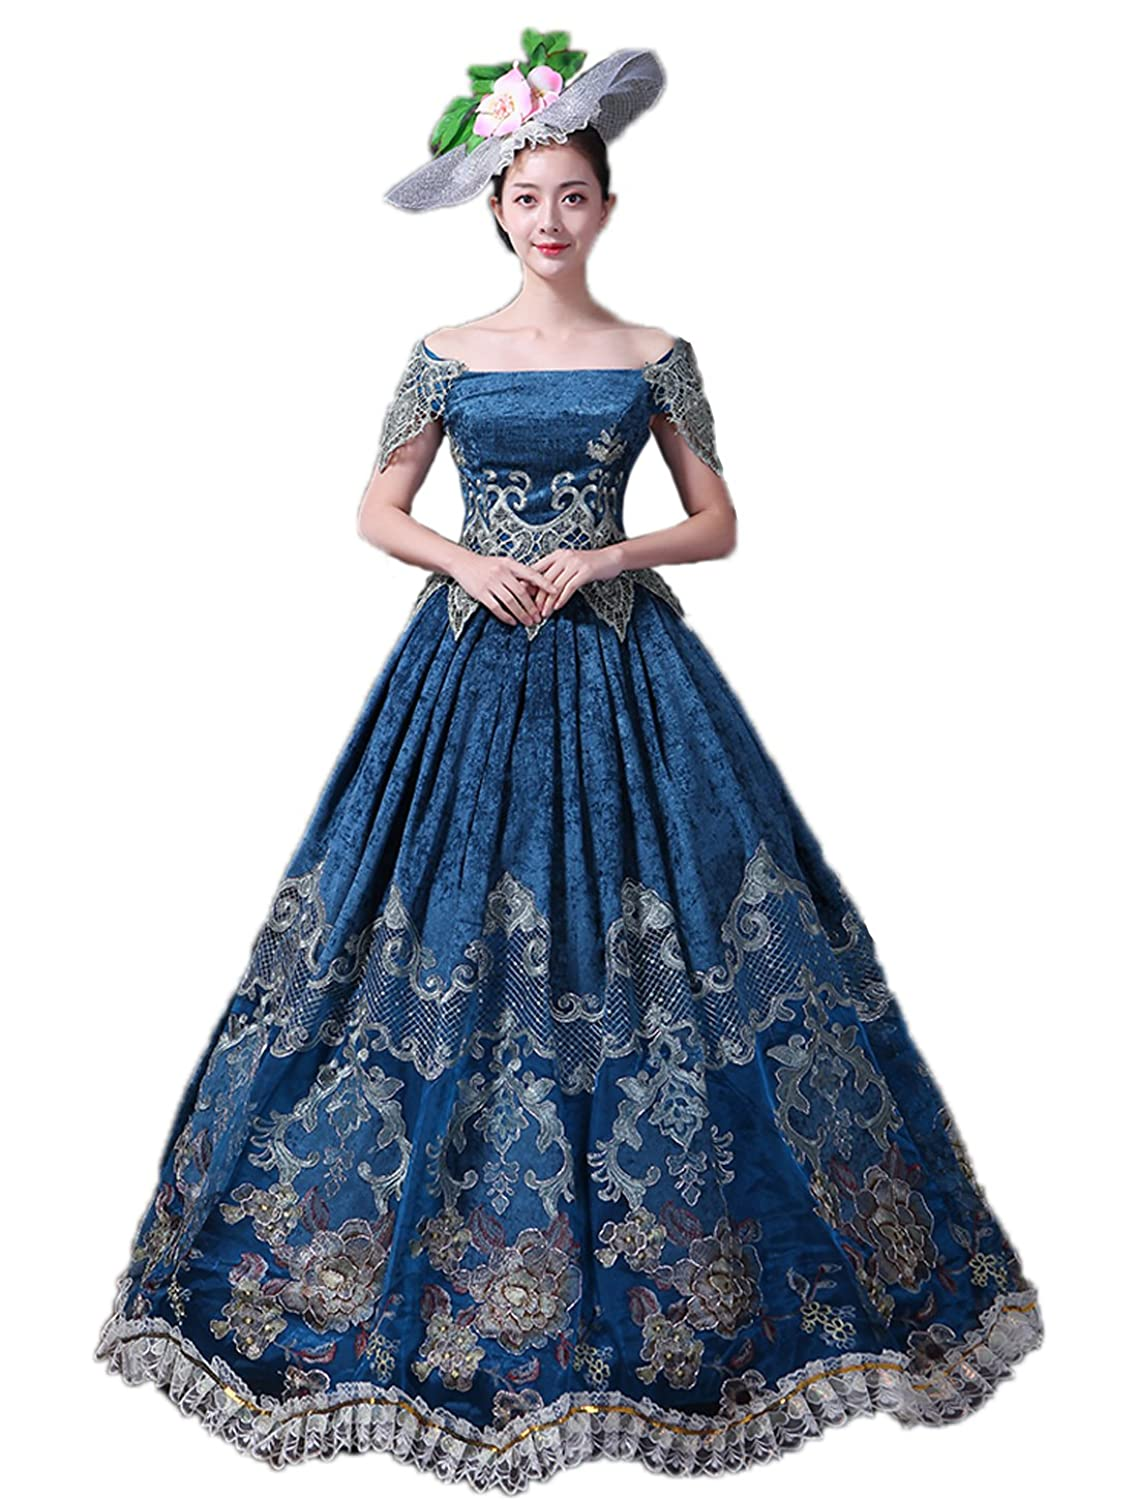 268034e44e489 Victorian Costumes: Dresses, Saloon Girls, Southern Belle, Witch Zukzi  Womens Plus Size. Zukzi Womens Plus Size Elegant Recoco Victorian Dress  Costume Ball ...